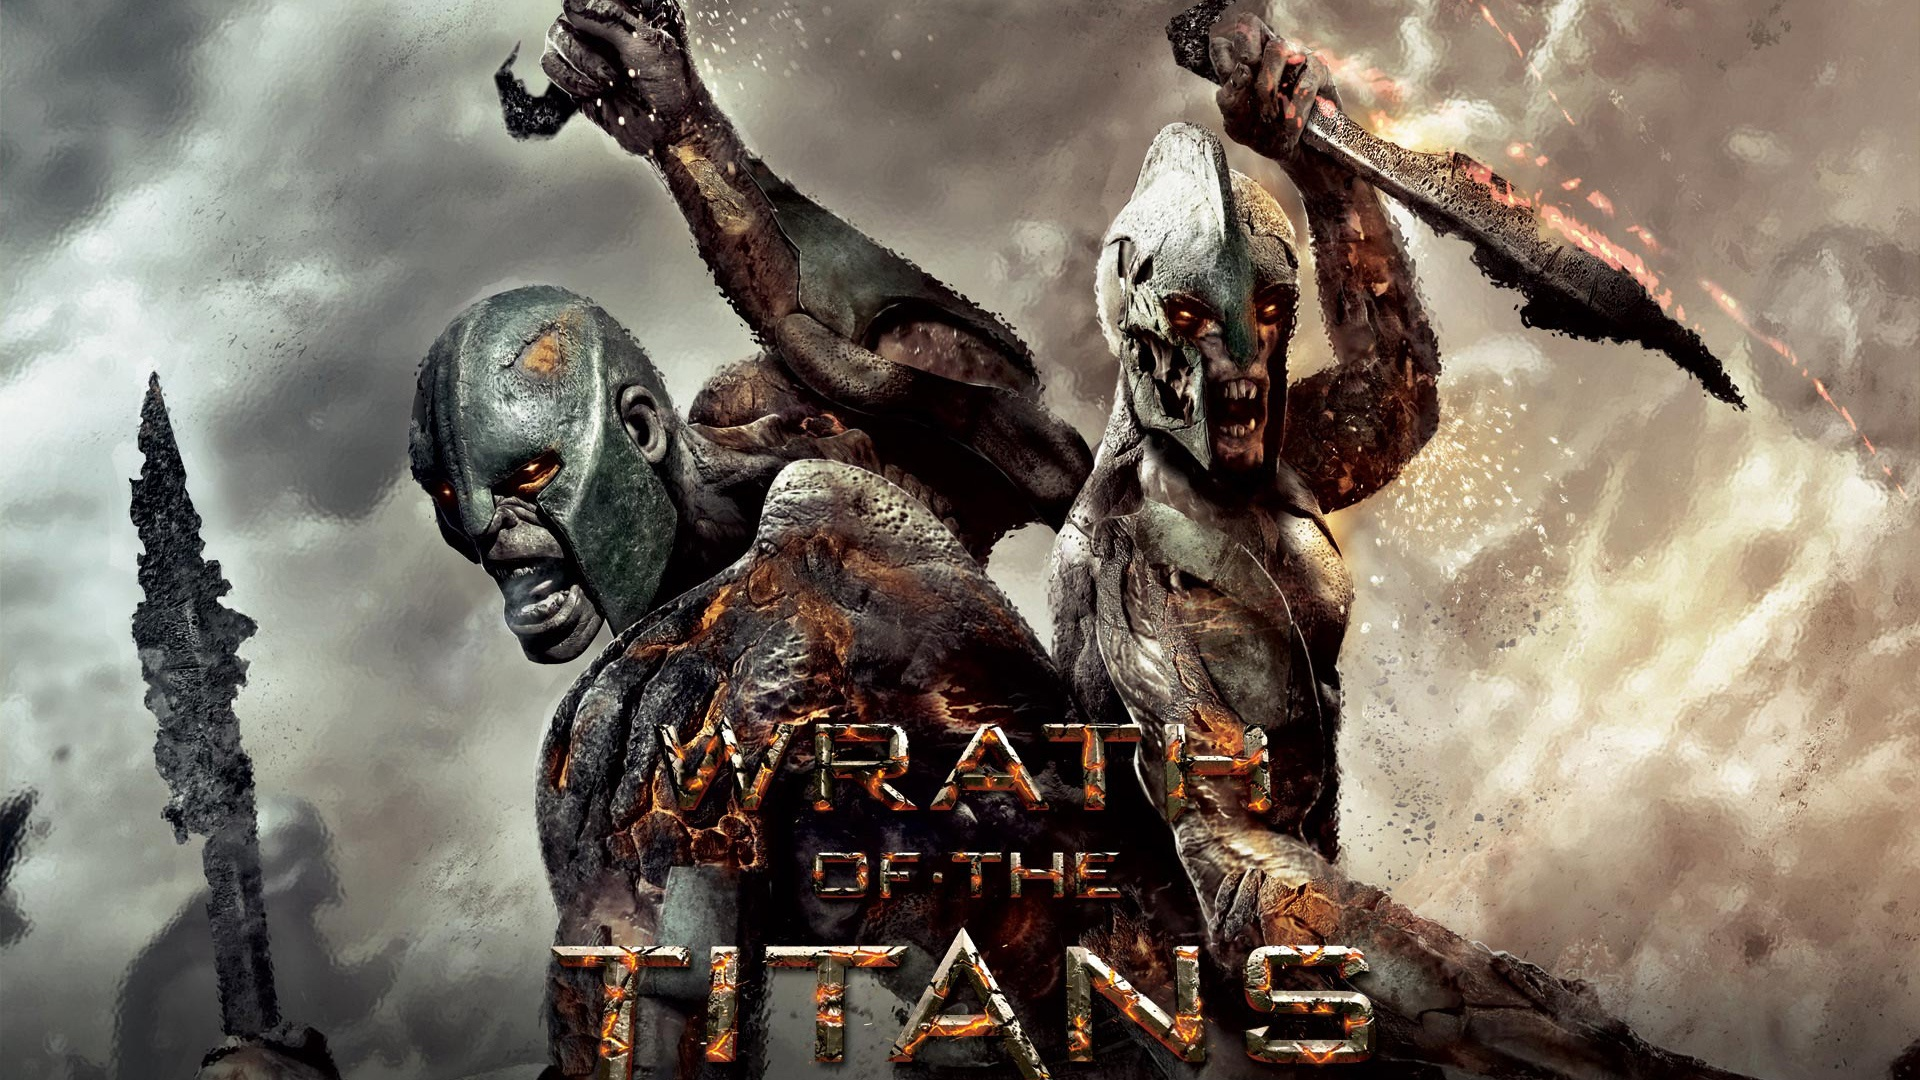 Wrath of the Titans Movie Wallpapers HD 1080p HD Desktop Wallpapers 1920x1080